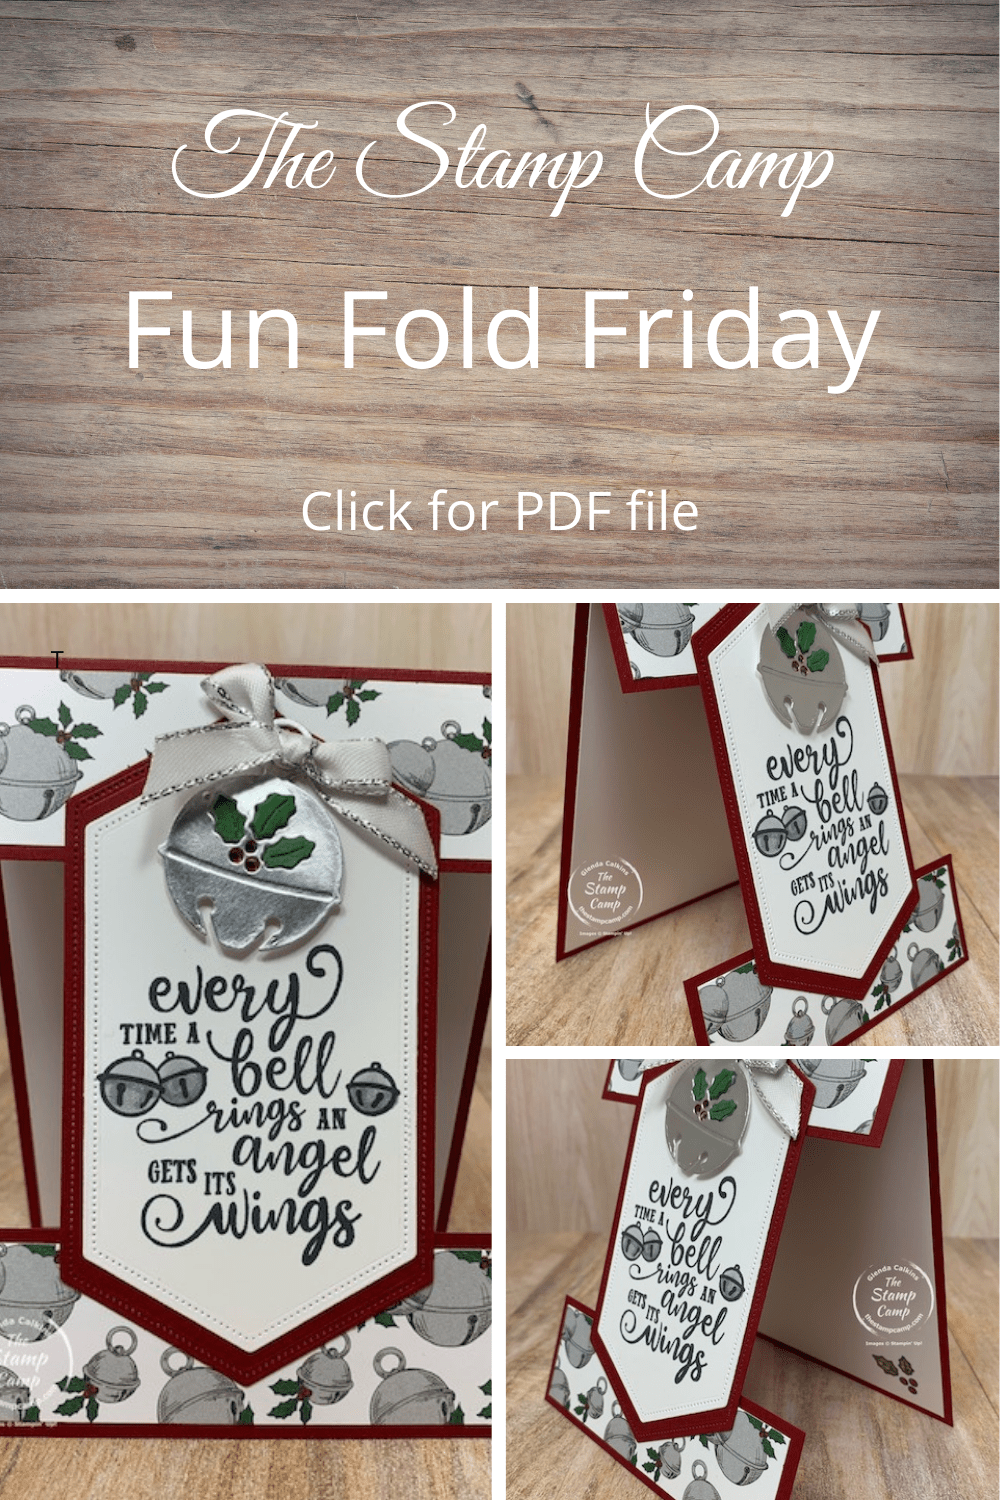 Today's Fun Fold Friday card features the Christmas Means More stamp set. Oh the memories I have with the sentiments in this stamp set. All my kids favorite movies are featured in this sentiment. I'm not sure what you call this fun fold but it is fun! #stampinup #thestampcamp #glendasblog #christmas #funfold